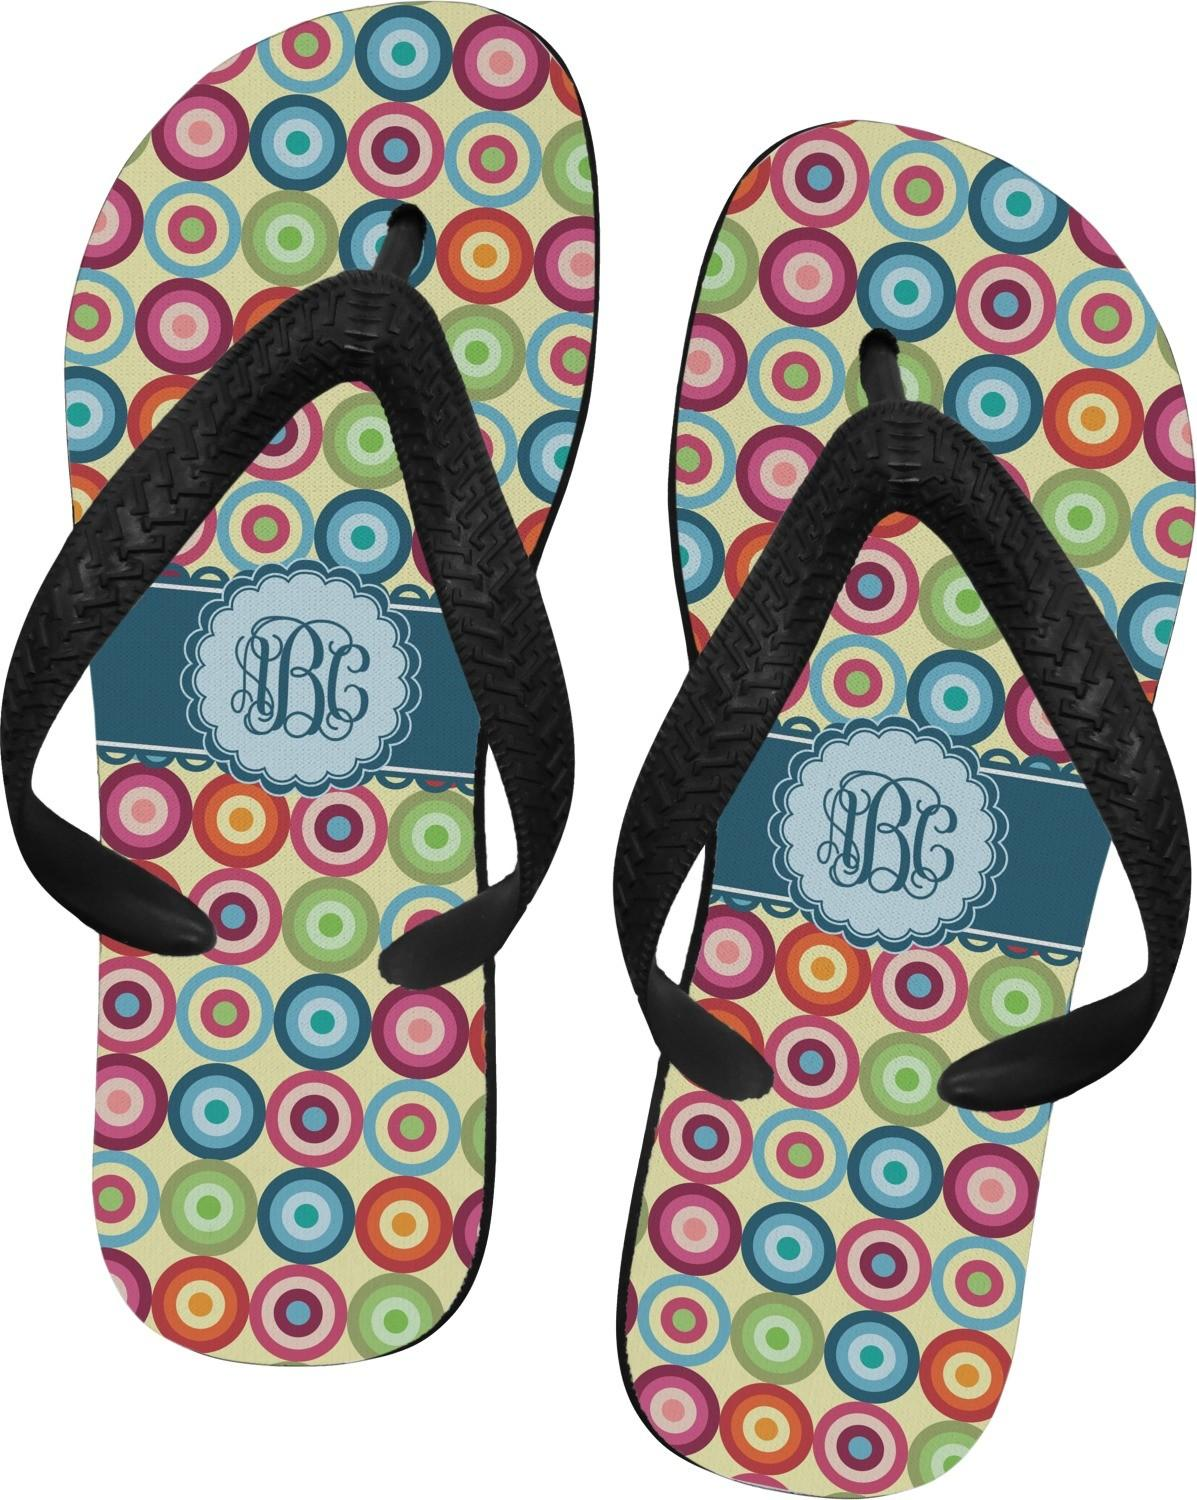 Retro Circles Flip Flops Large Personalized